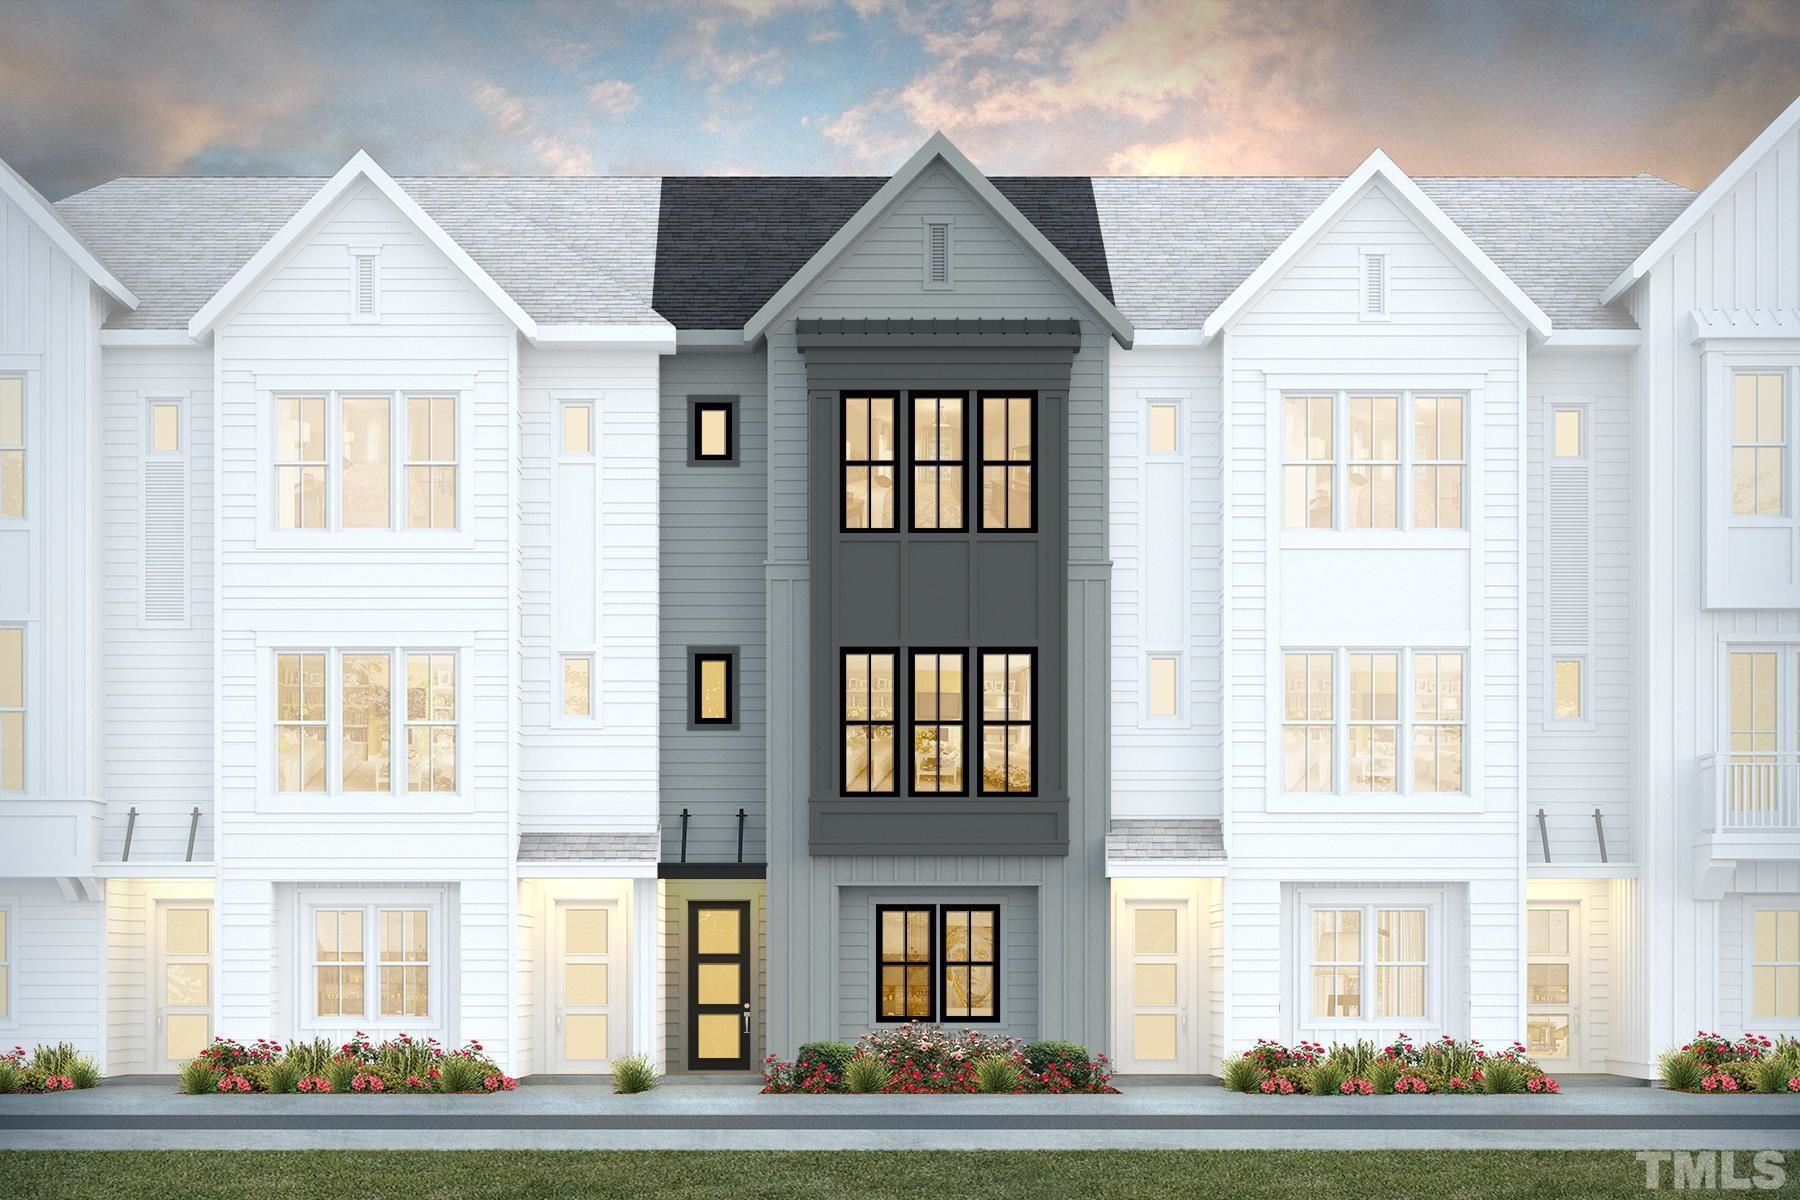 Photo of 1185 Cotton Springs Drive #9071, Wendell, NC 27591 (MLS # 2415823)